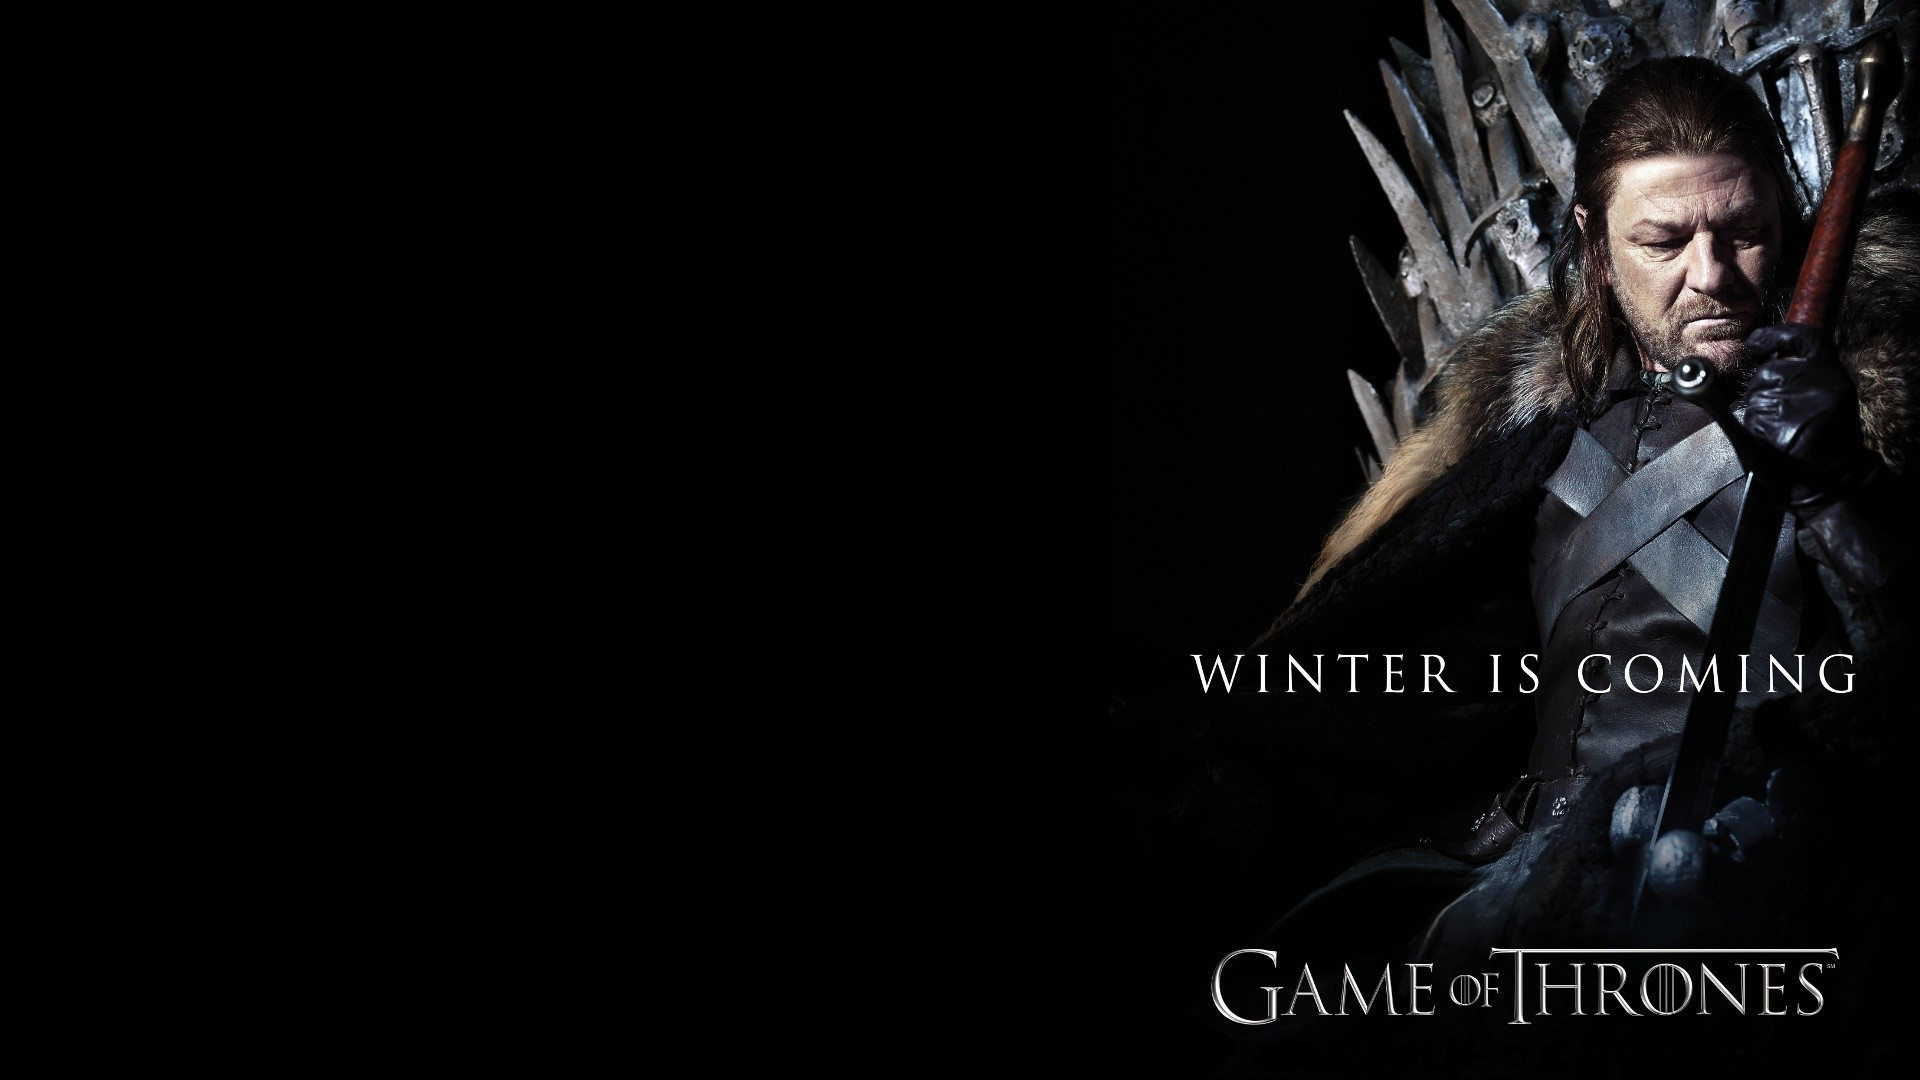 1920x1080 Game Of Thrones Wallpaper Winter Is Coming